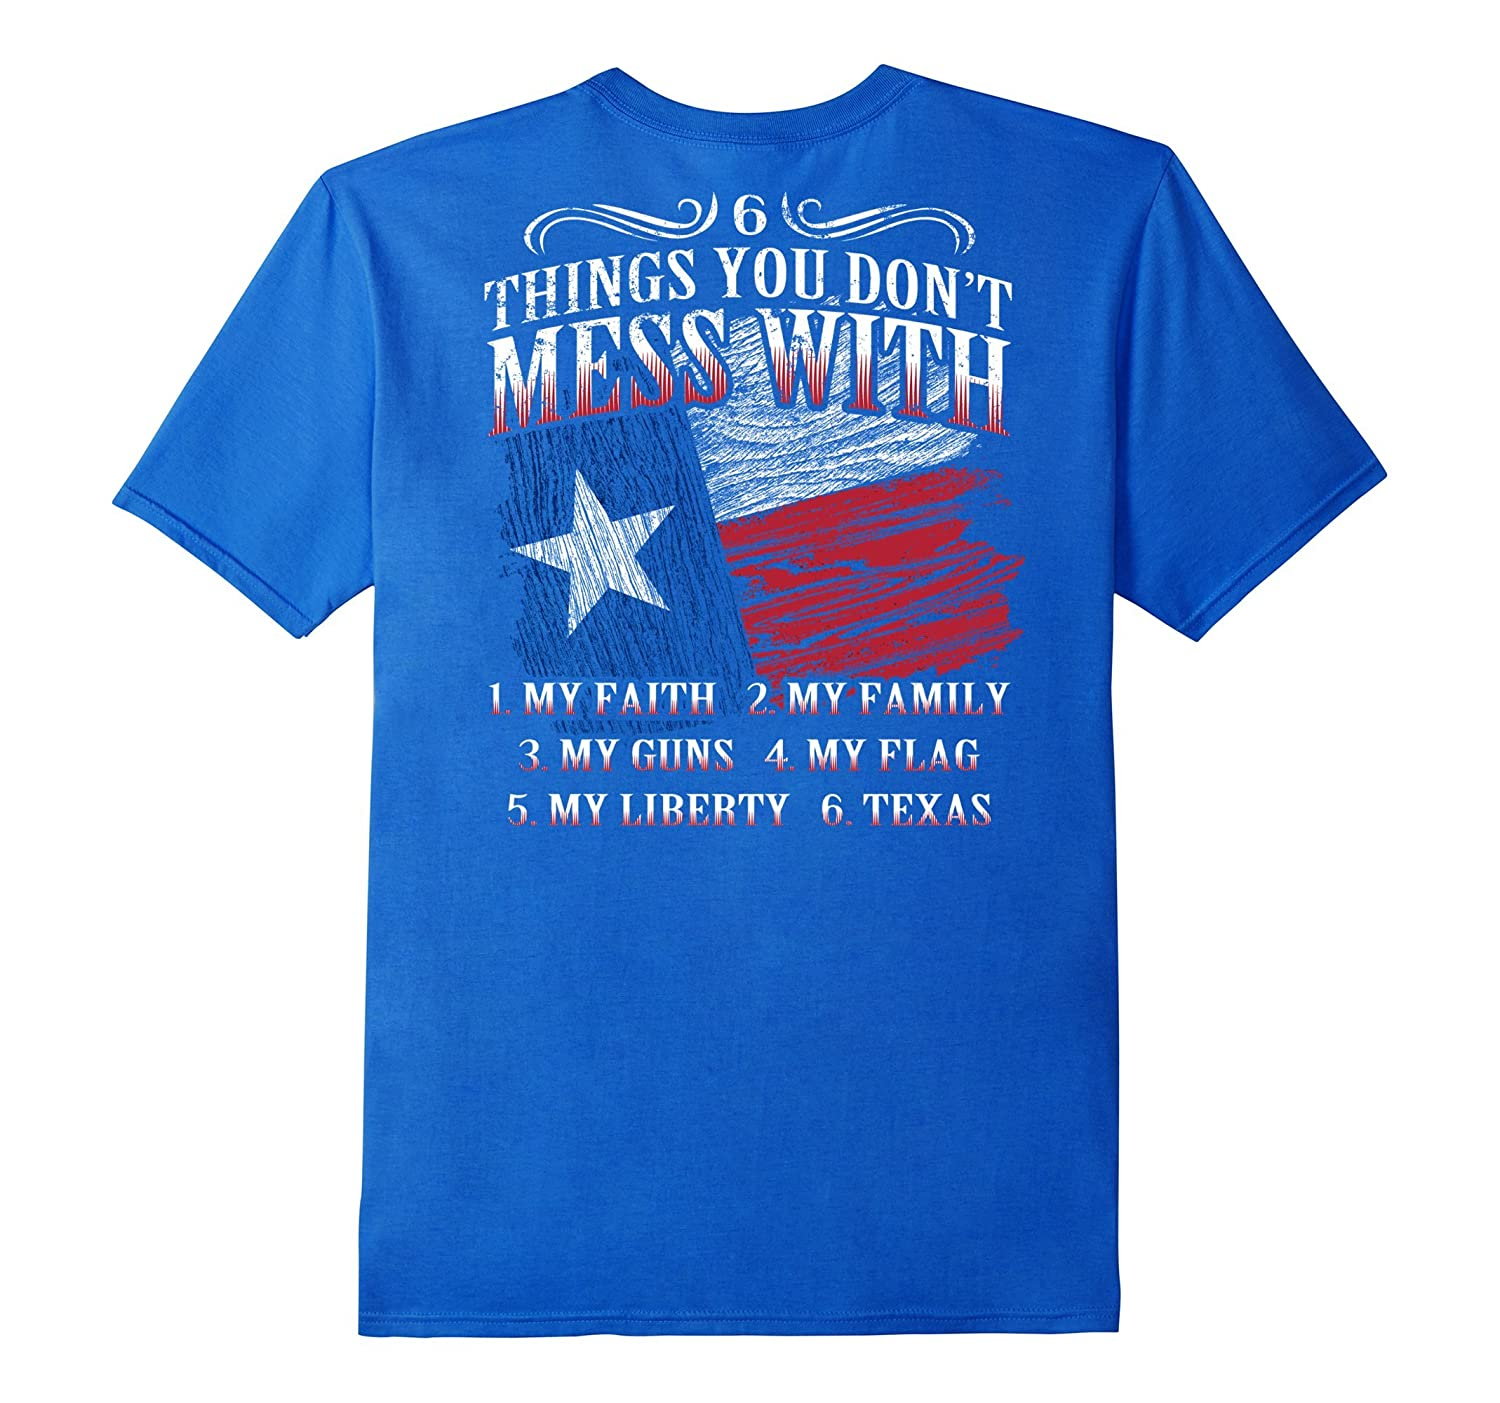 6 things don't mess with Texas- Cool Texas flag shirt saying